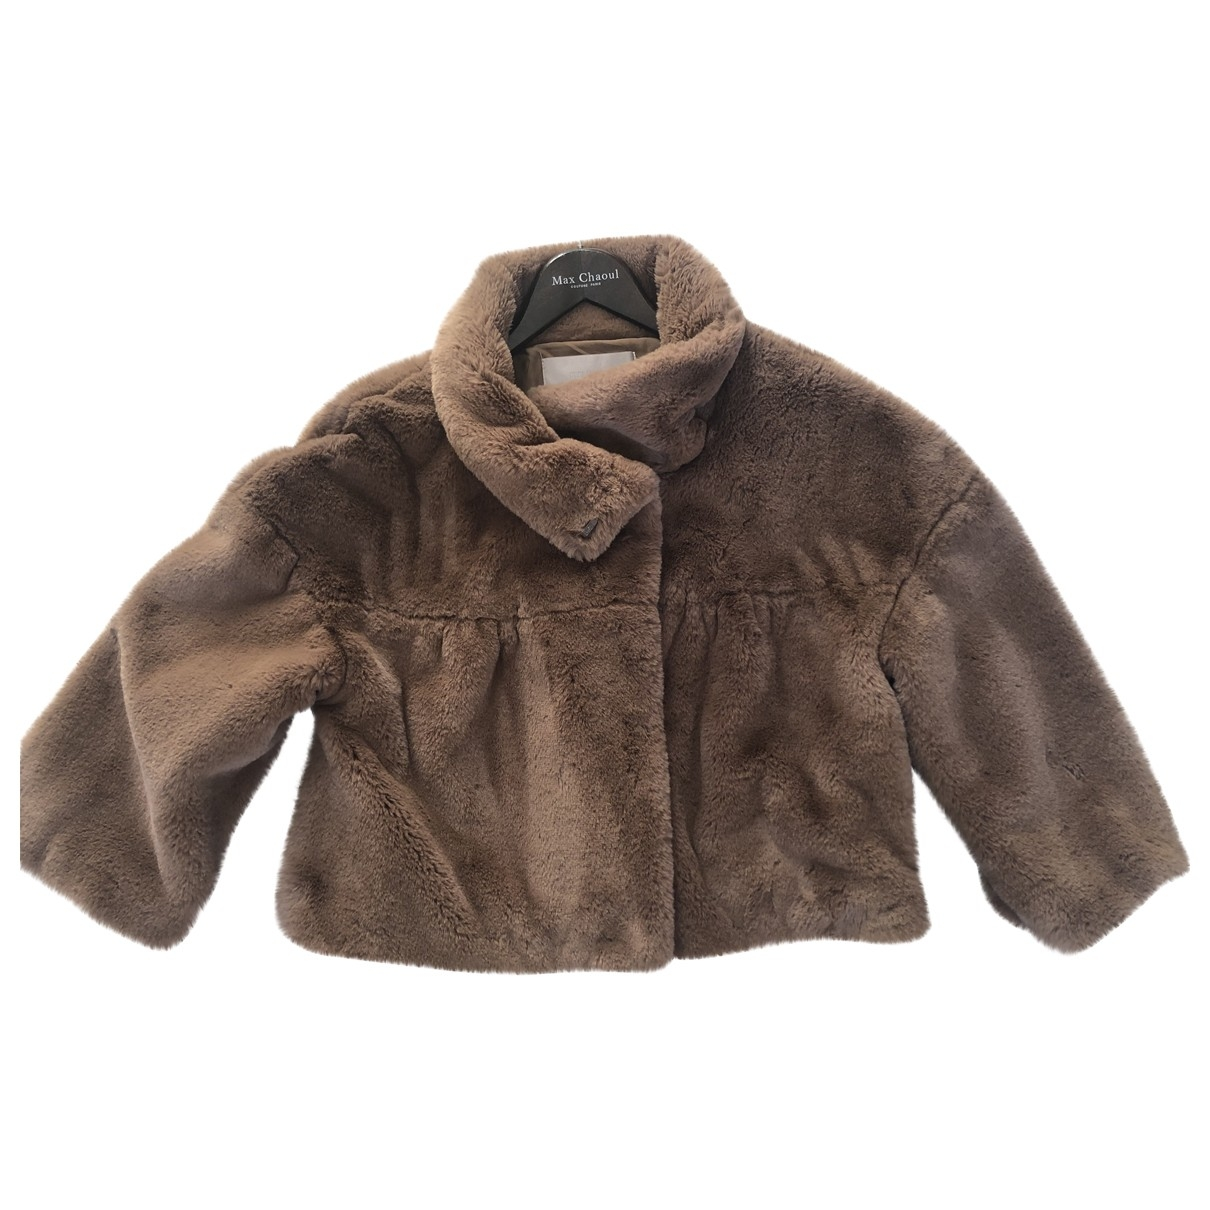 Georges Rech \N Brown coat for Women 36 FR